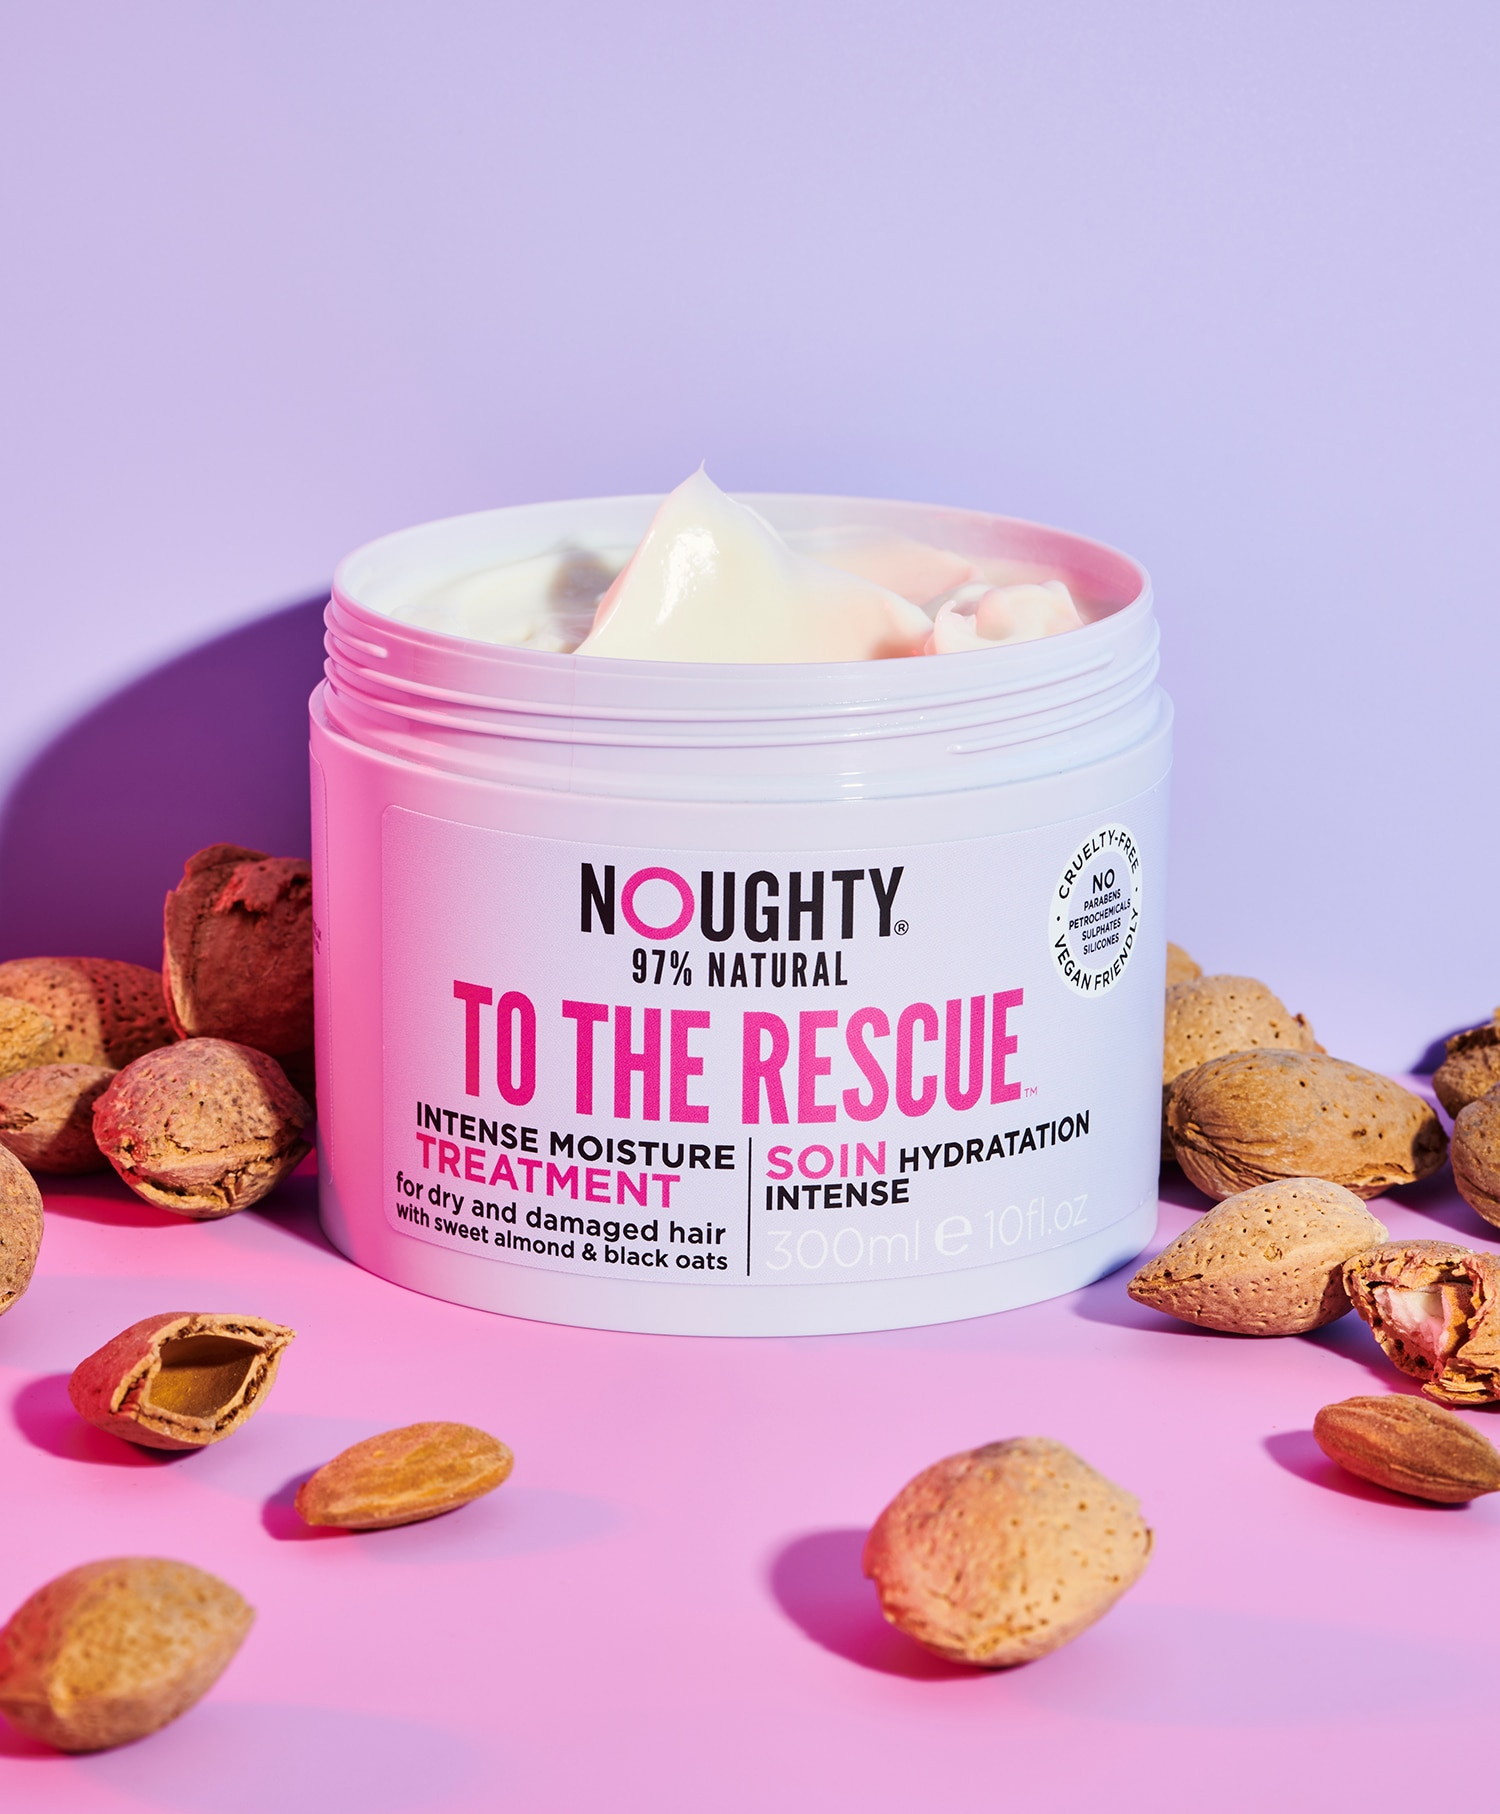 Noughty To The Rescue Intens Moisture Treatment